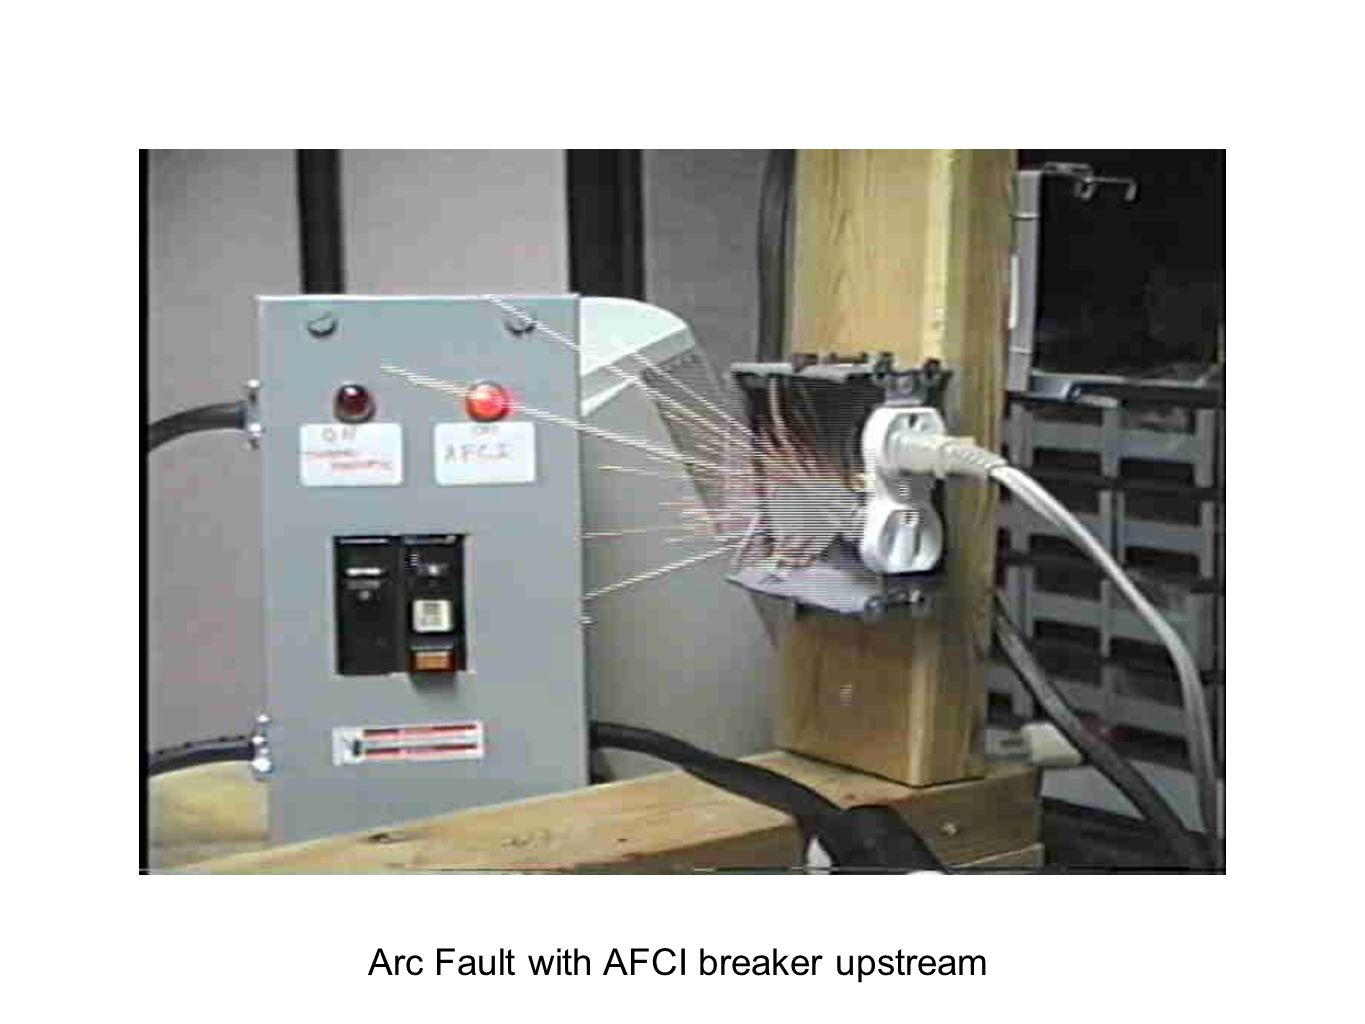 Arc Fault with AFCI breaker upstream